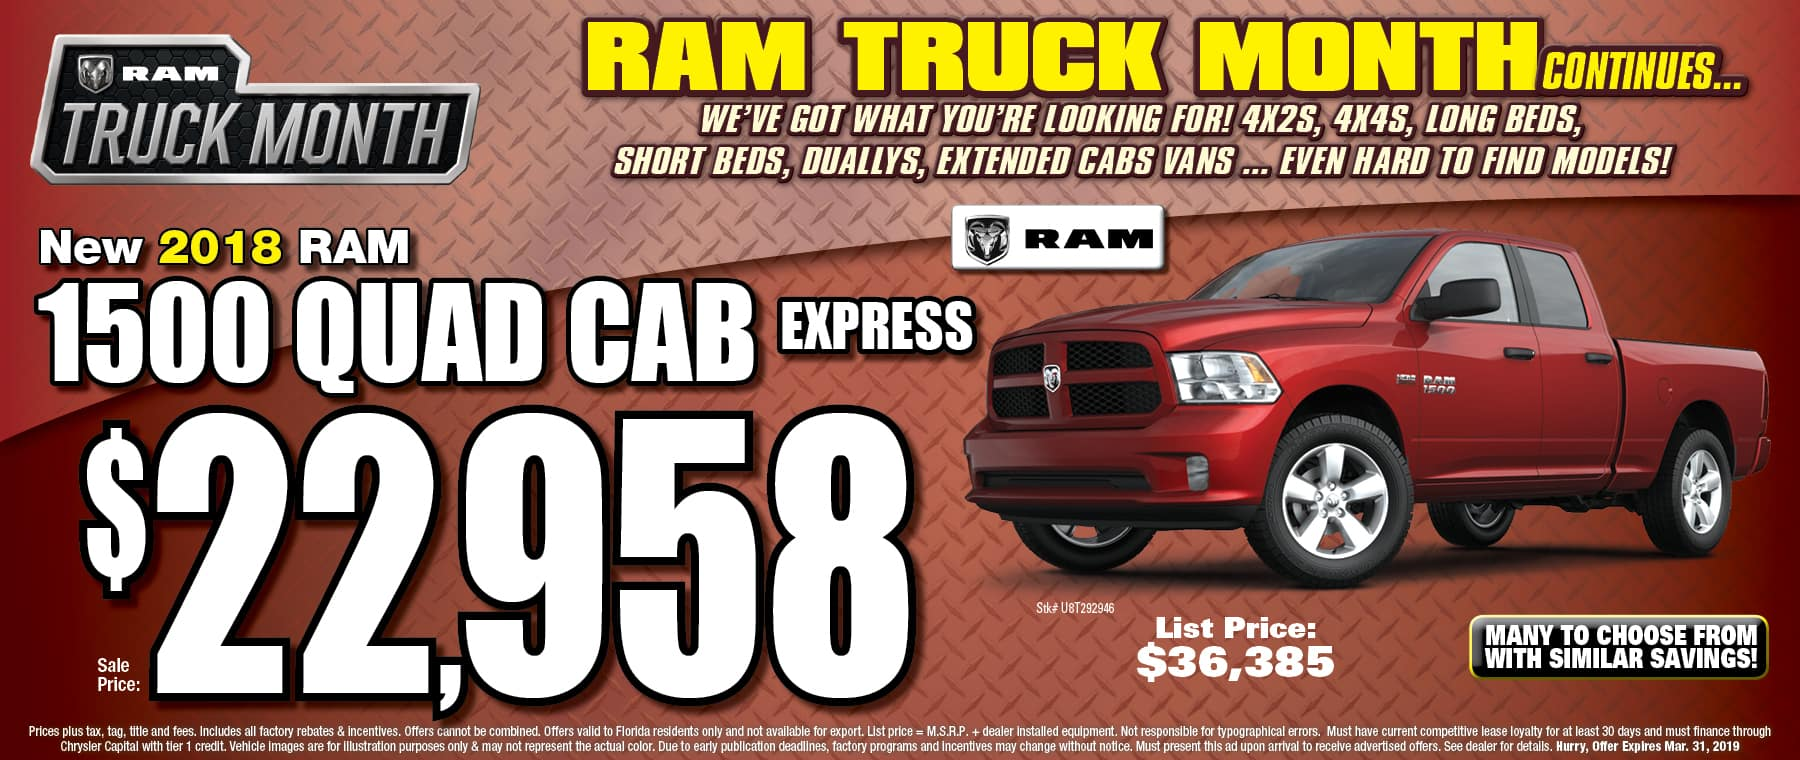 New Ram Quad Cab Express! - University Dodge RAM!